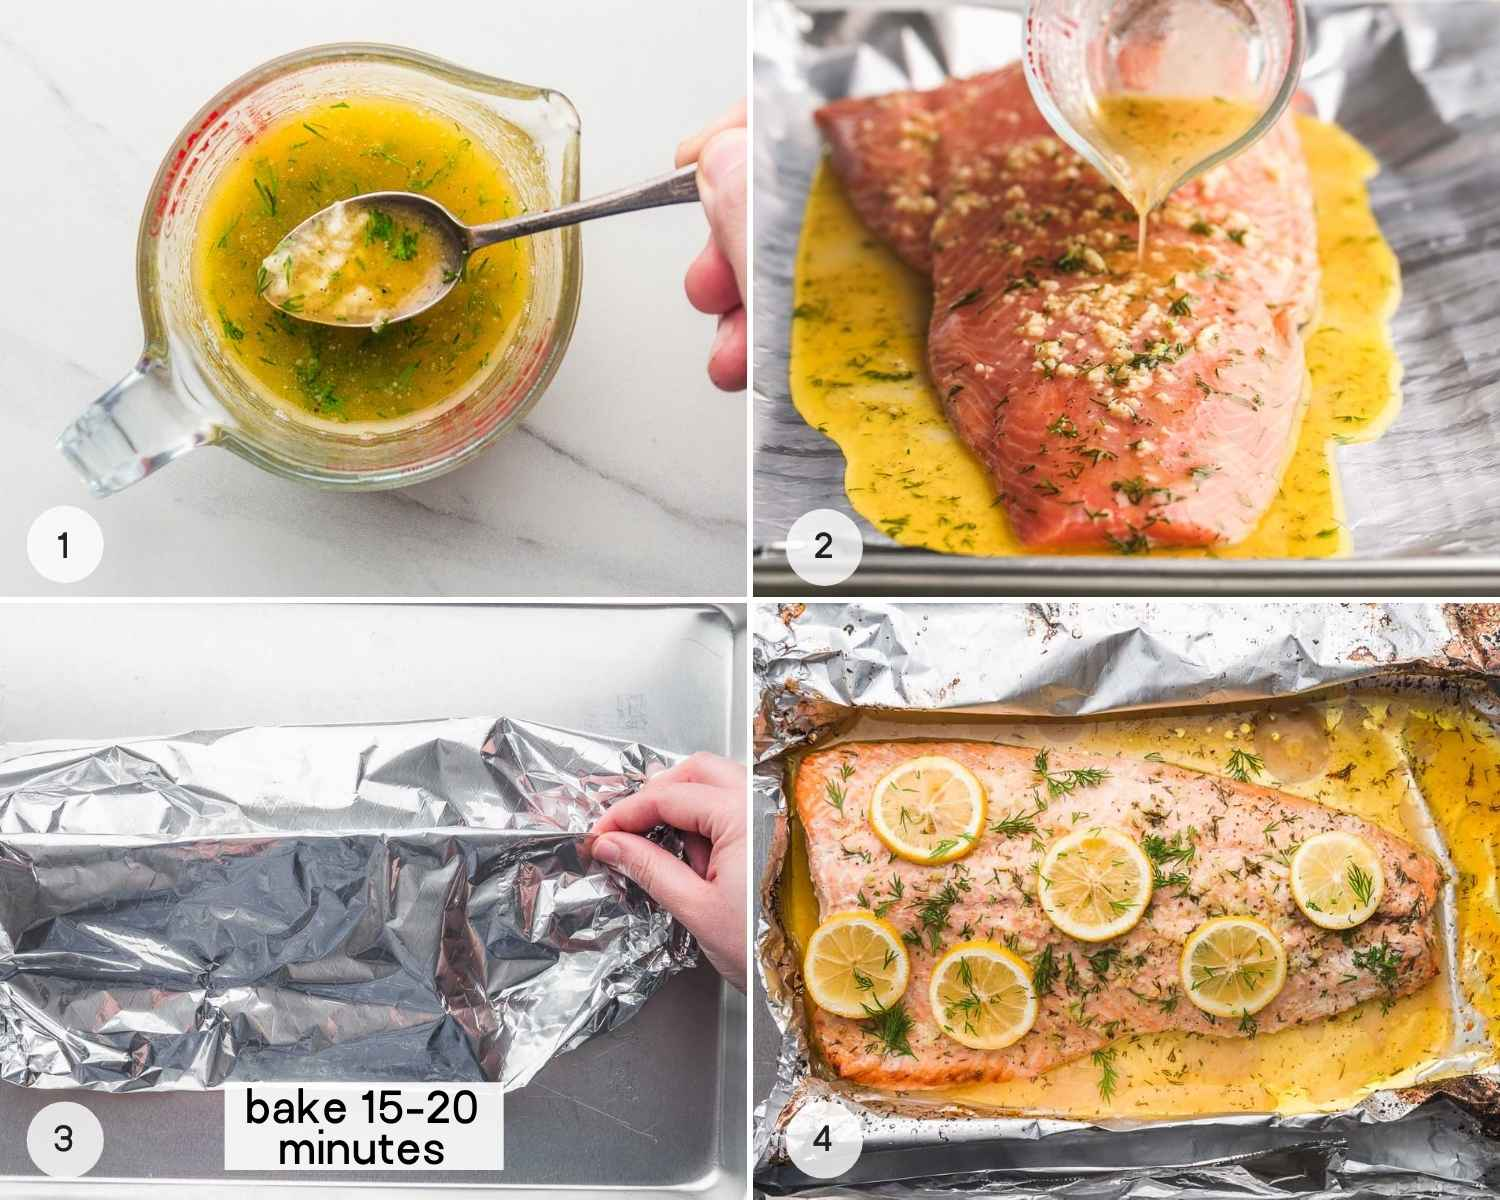 How to make salmon, a collage with 4 images including how to make the garlic butter sauce, drizzling the sauce over the salmon, creating the foil packet, and baking the salmon.